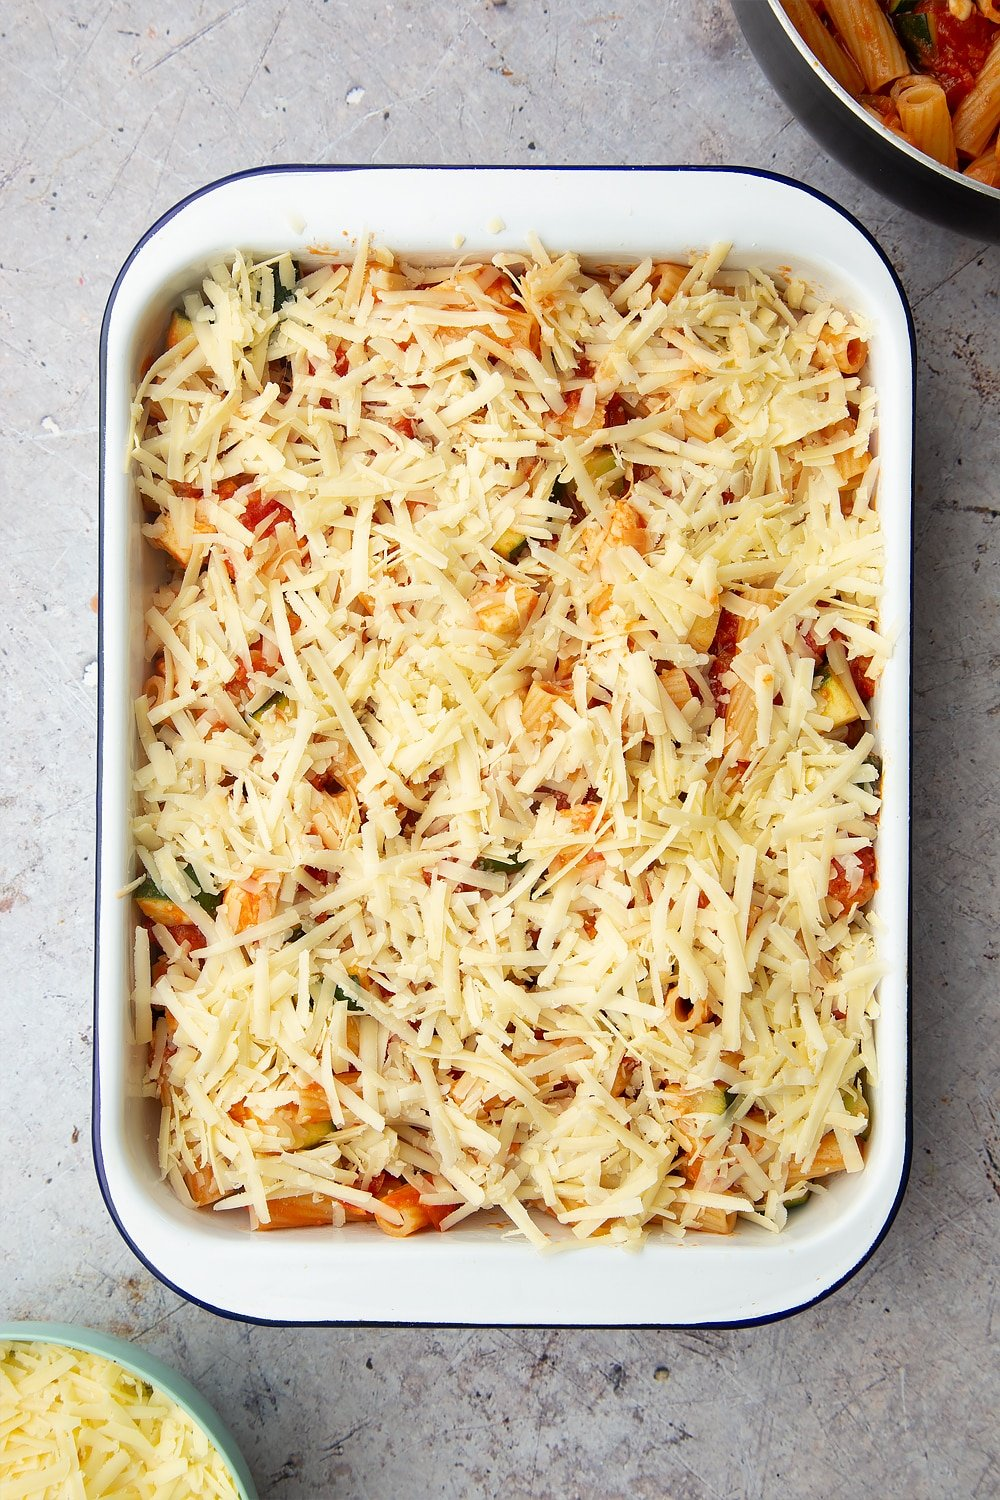 A tray of halloumi pasta bake with grated cheese on the top.